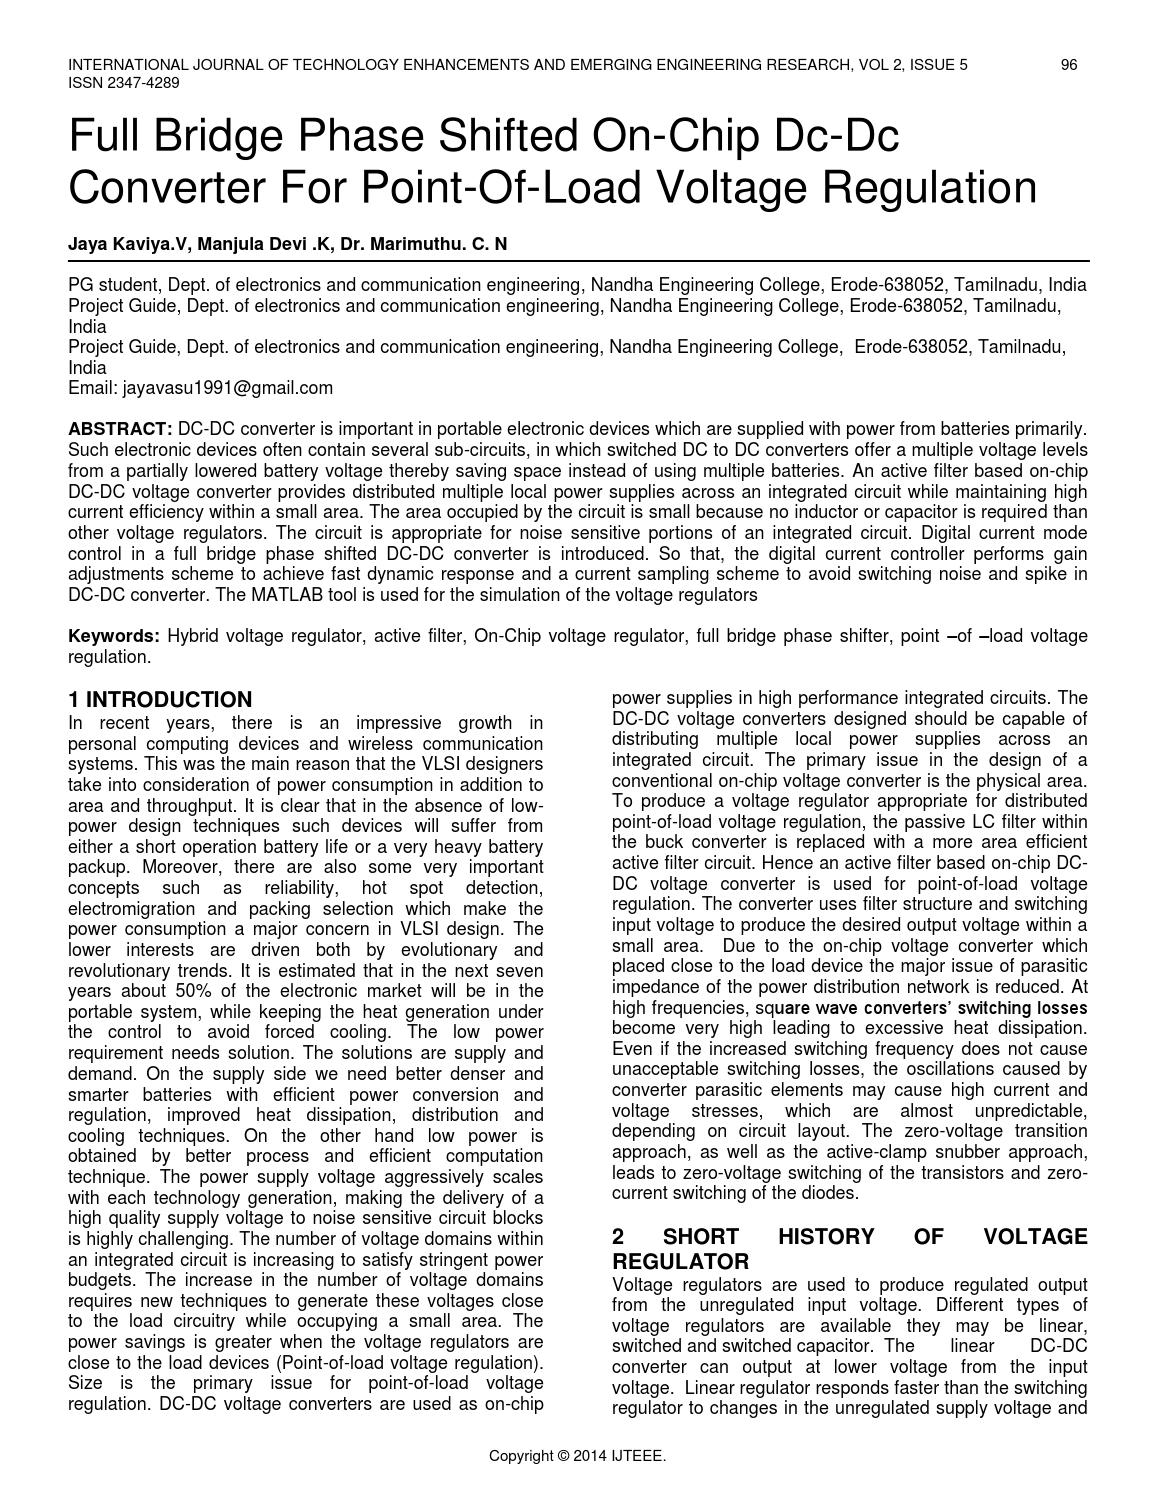 Full Bridge Phase Shifted On Chip Dc Converter For Point Of Load Compared To Linear Voltage Regulators The Switching Regulation By Ijteee Issuu